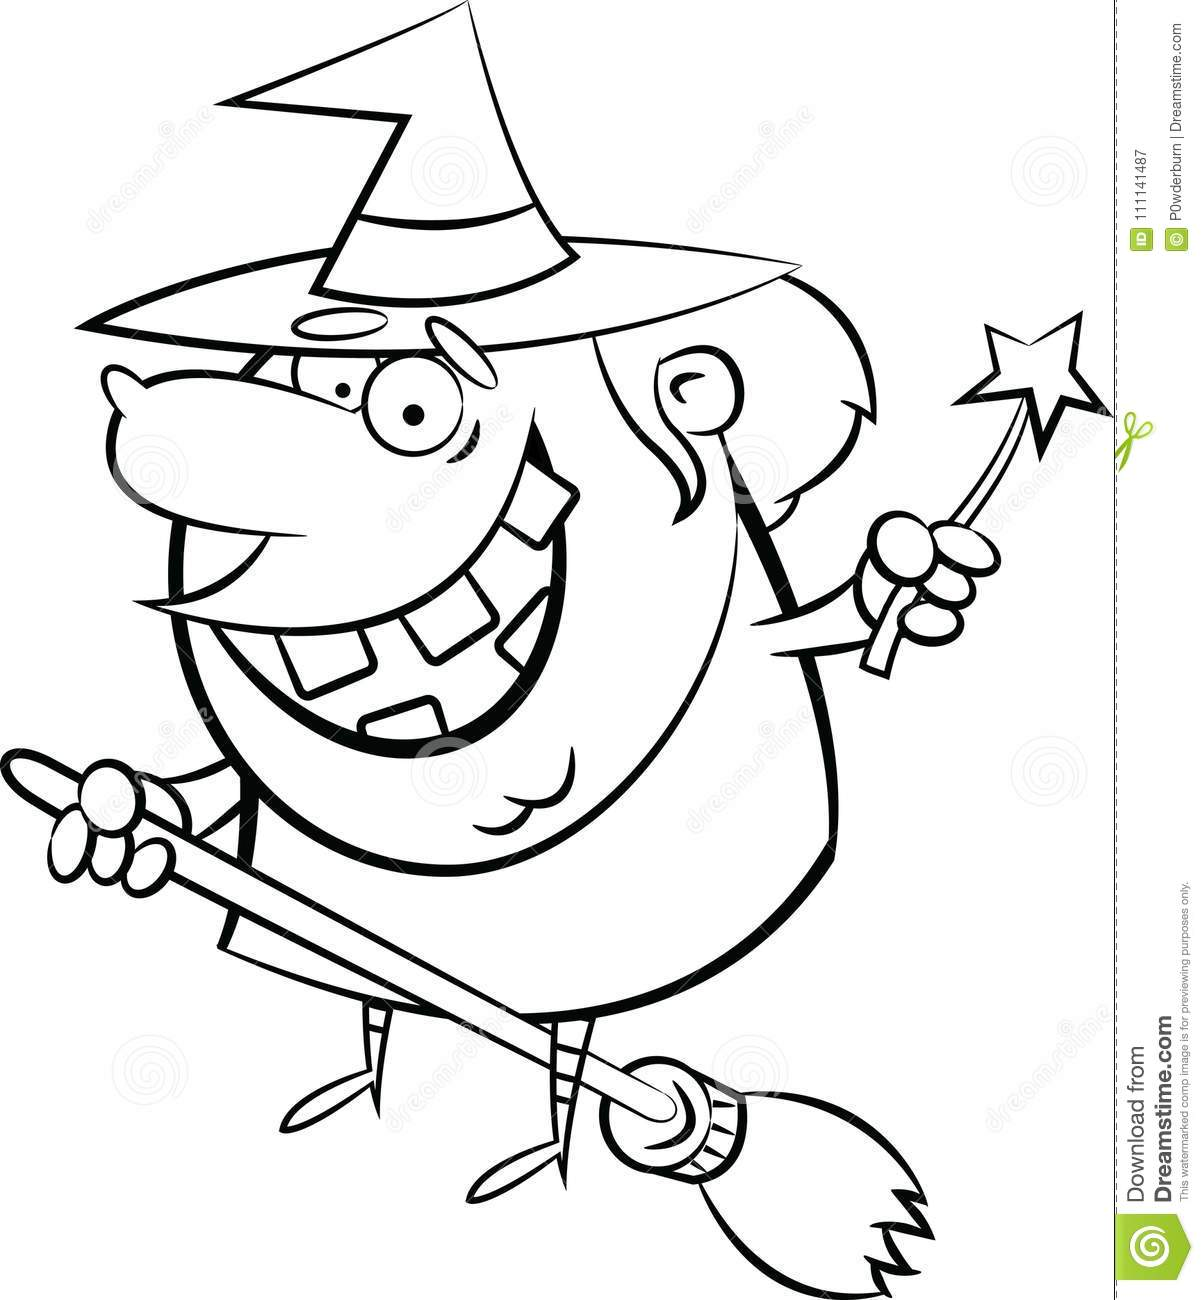 Halloween Coloring Page B&W Witch On A Broom Stock Vector ...